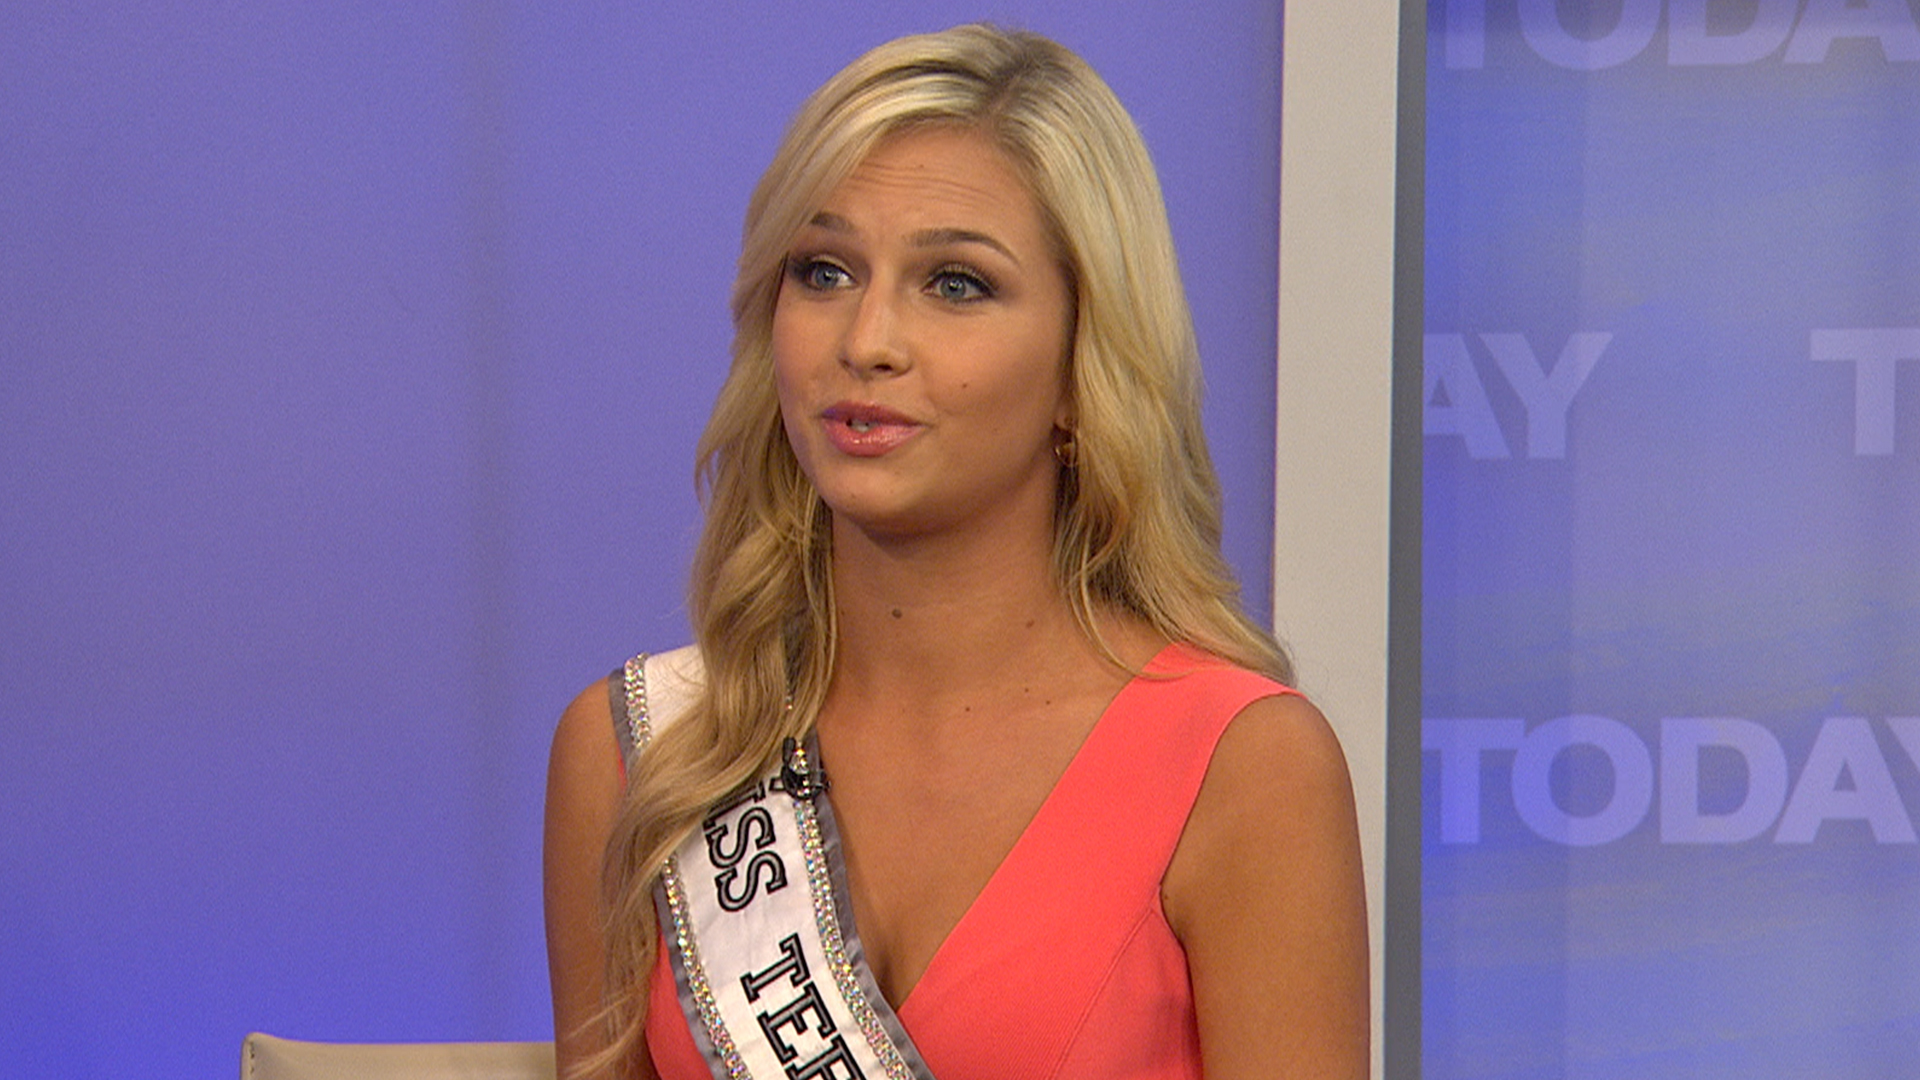 Miss photos leaked leaked teen usa photos